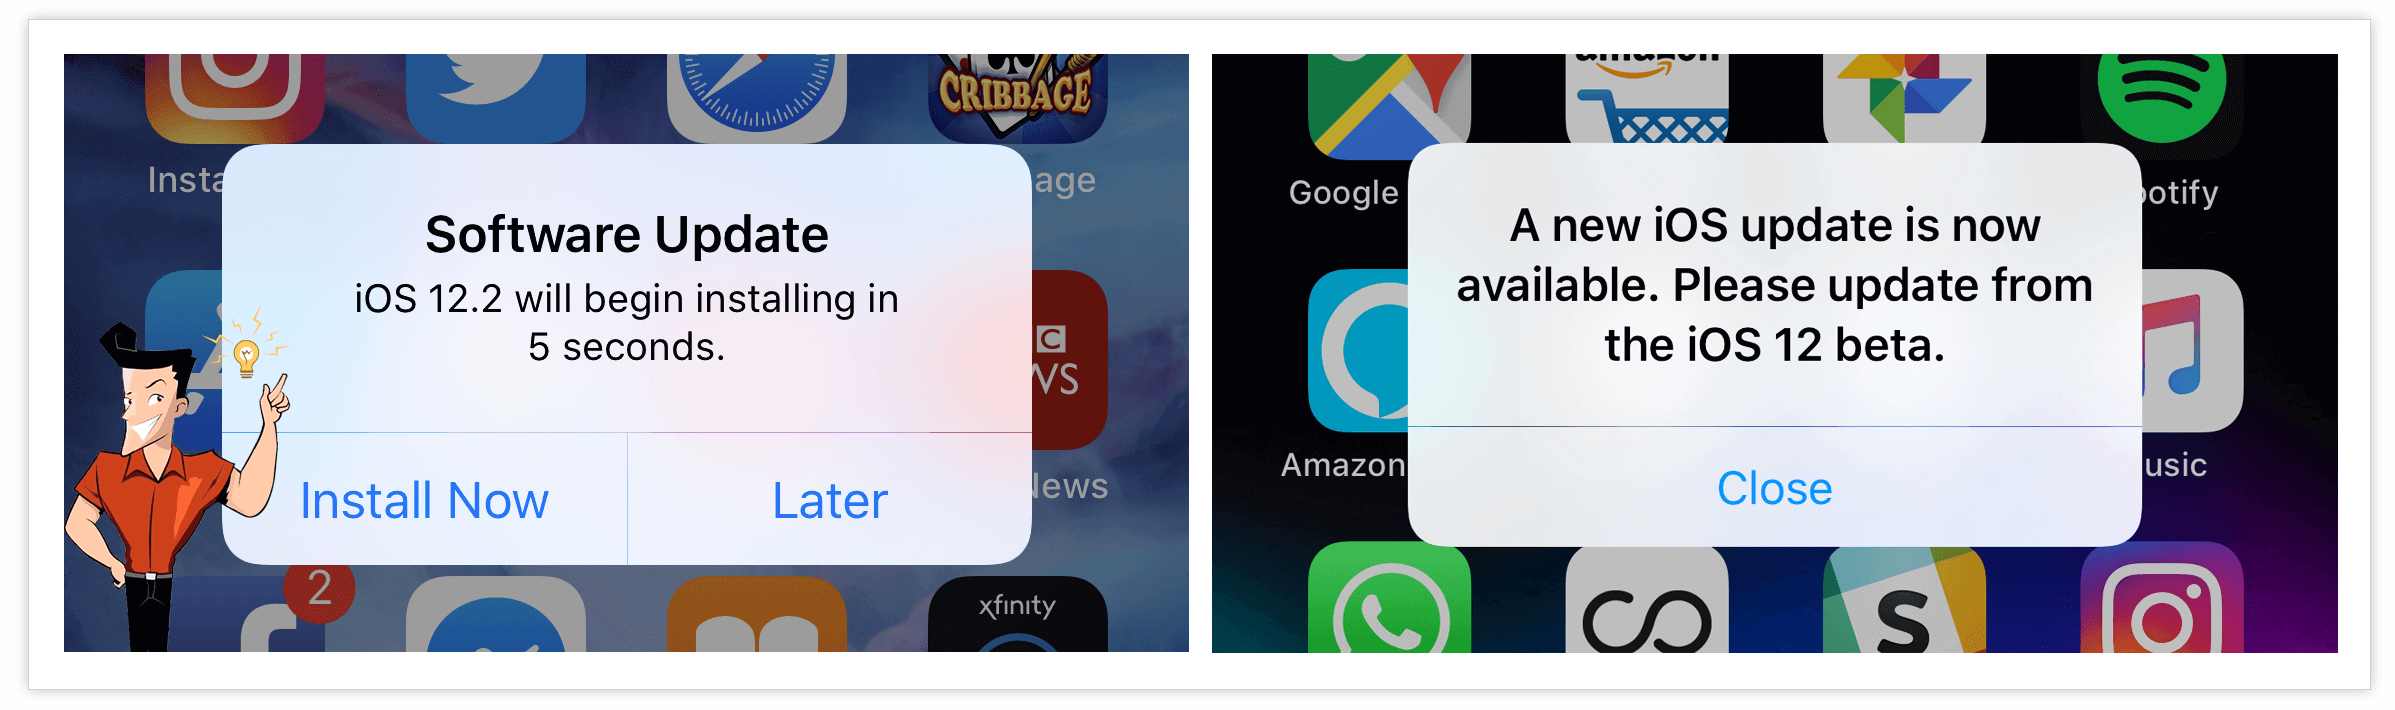 how to turn off iOS update notification